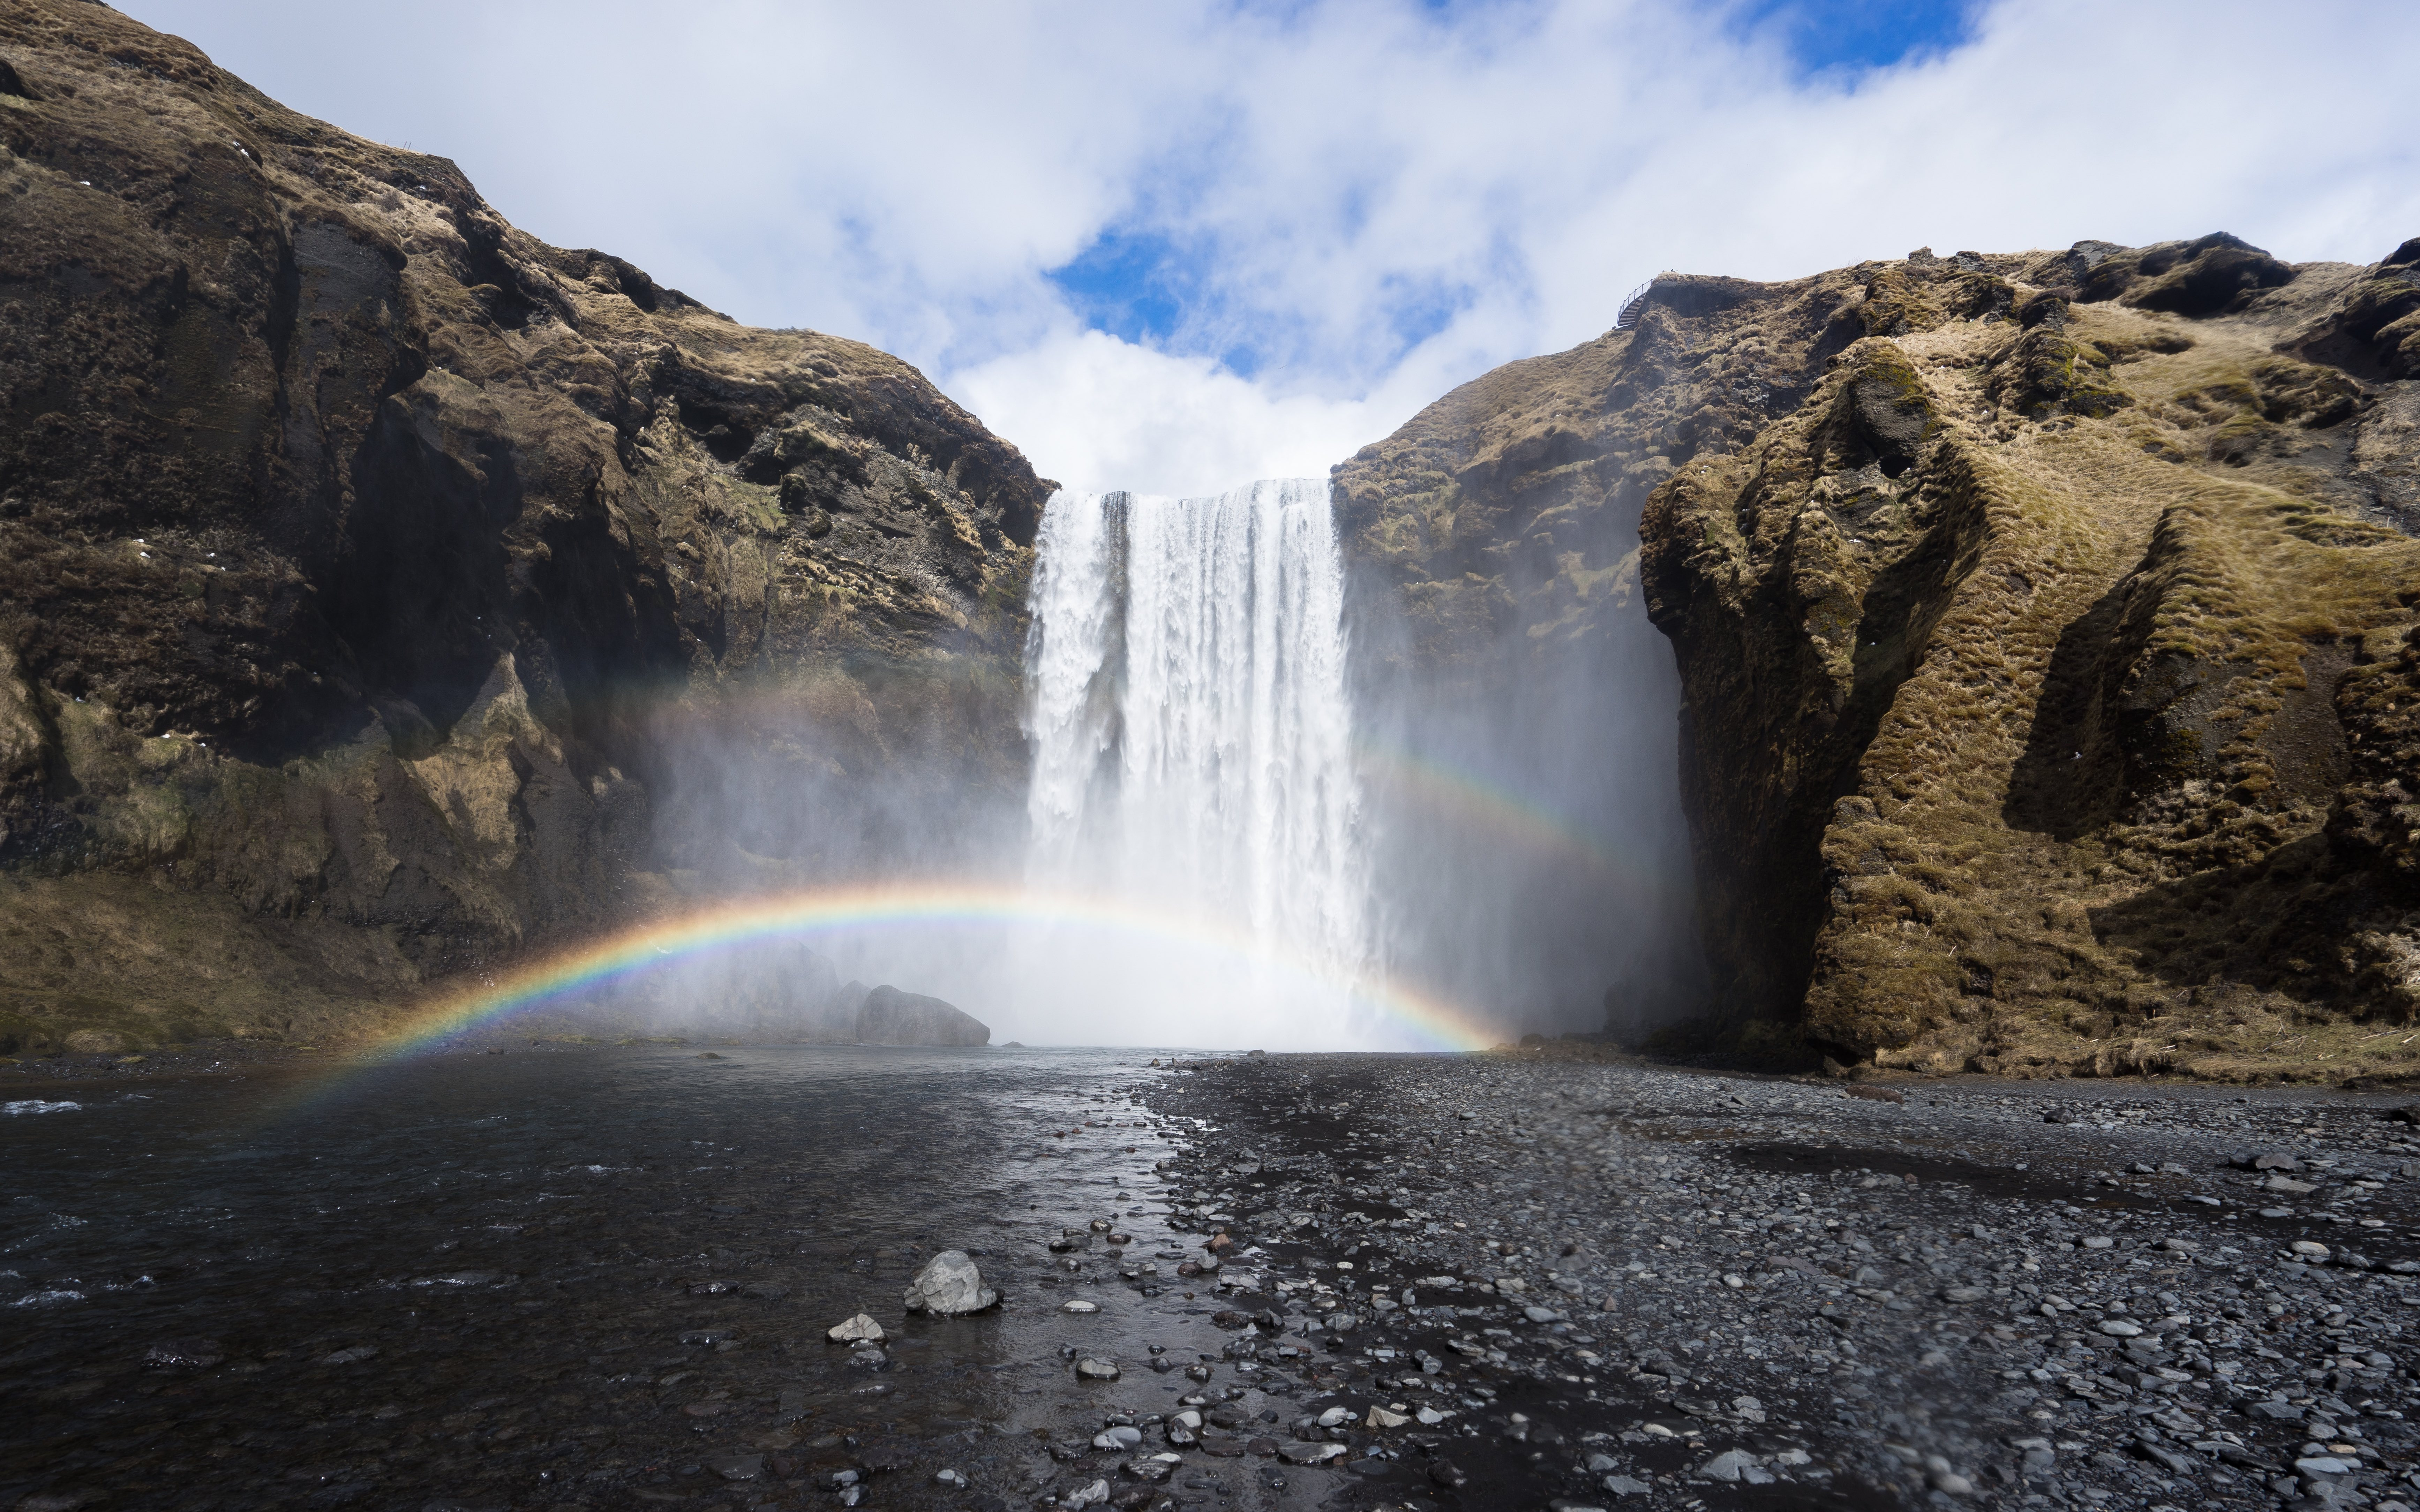 A rainbow formed by the sun and the spray from the mighty Skógafoss waterfall.